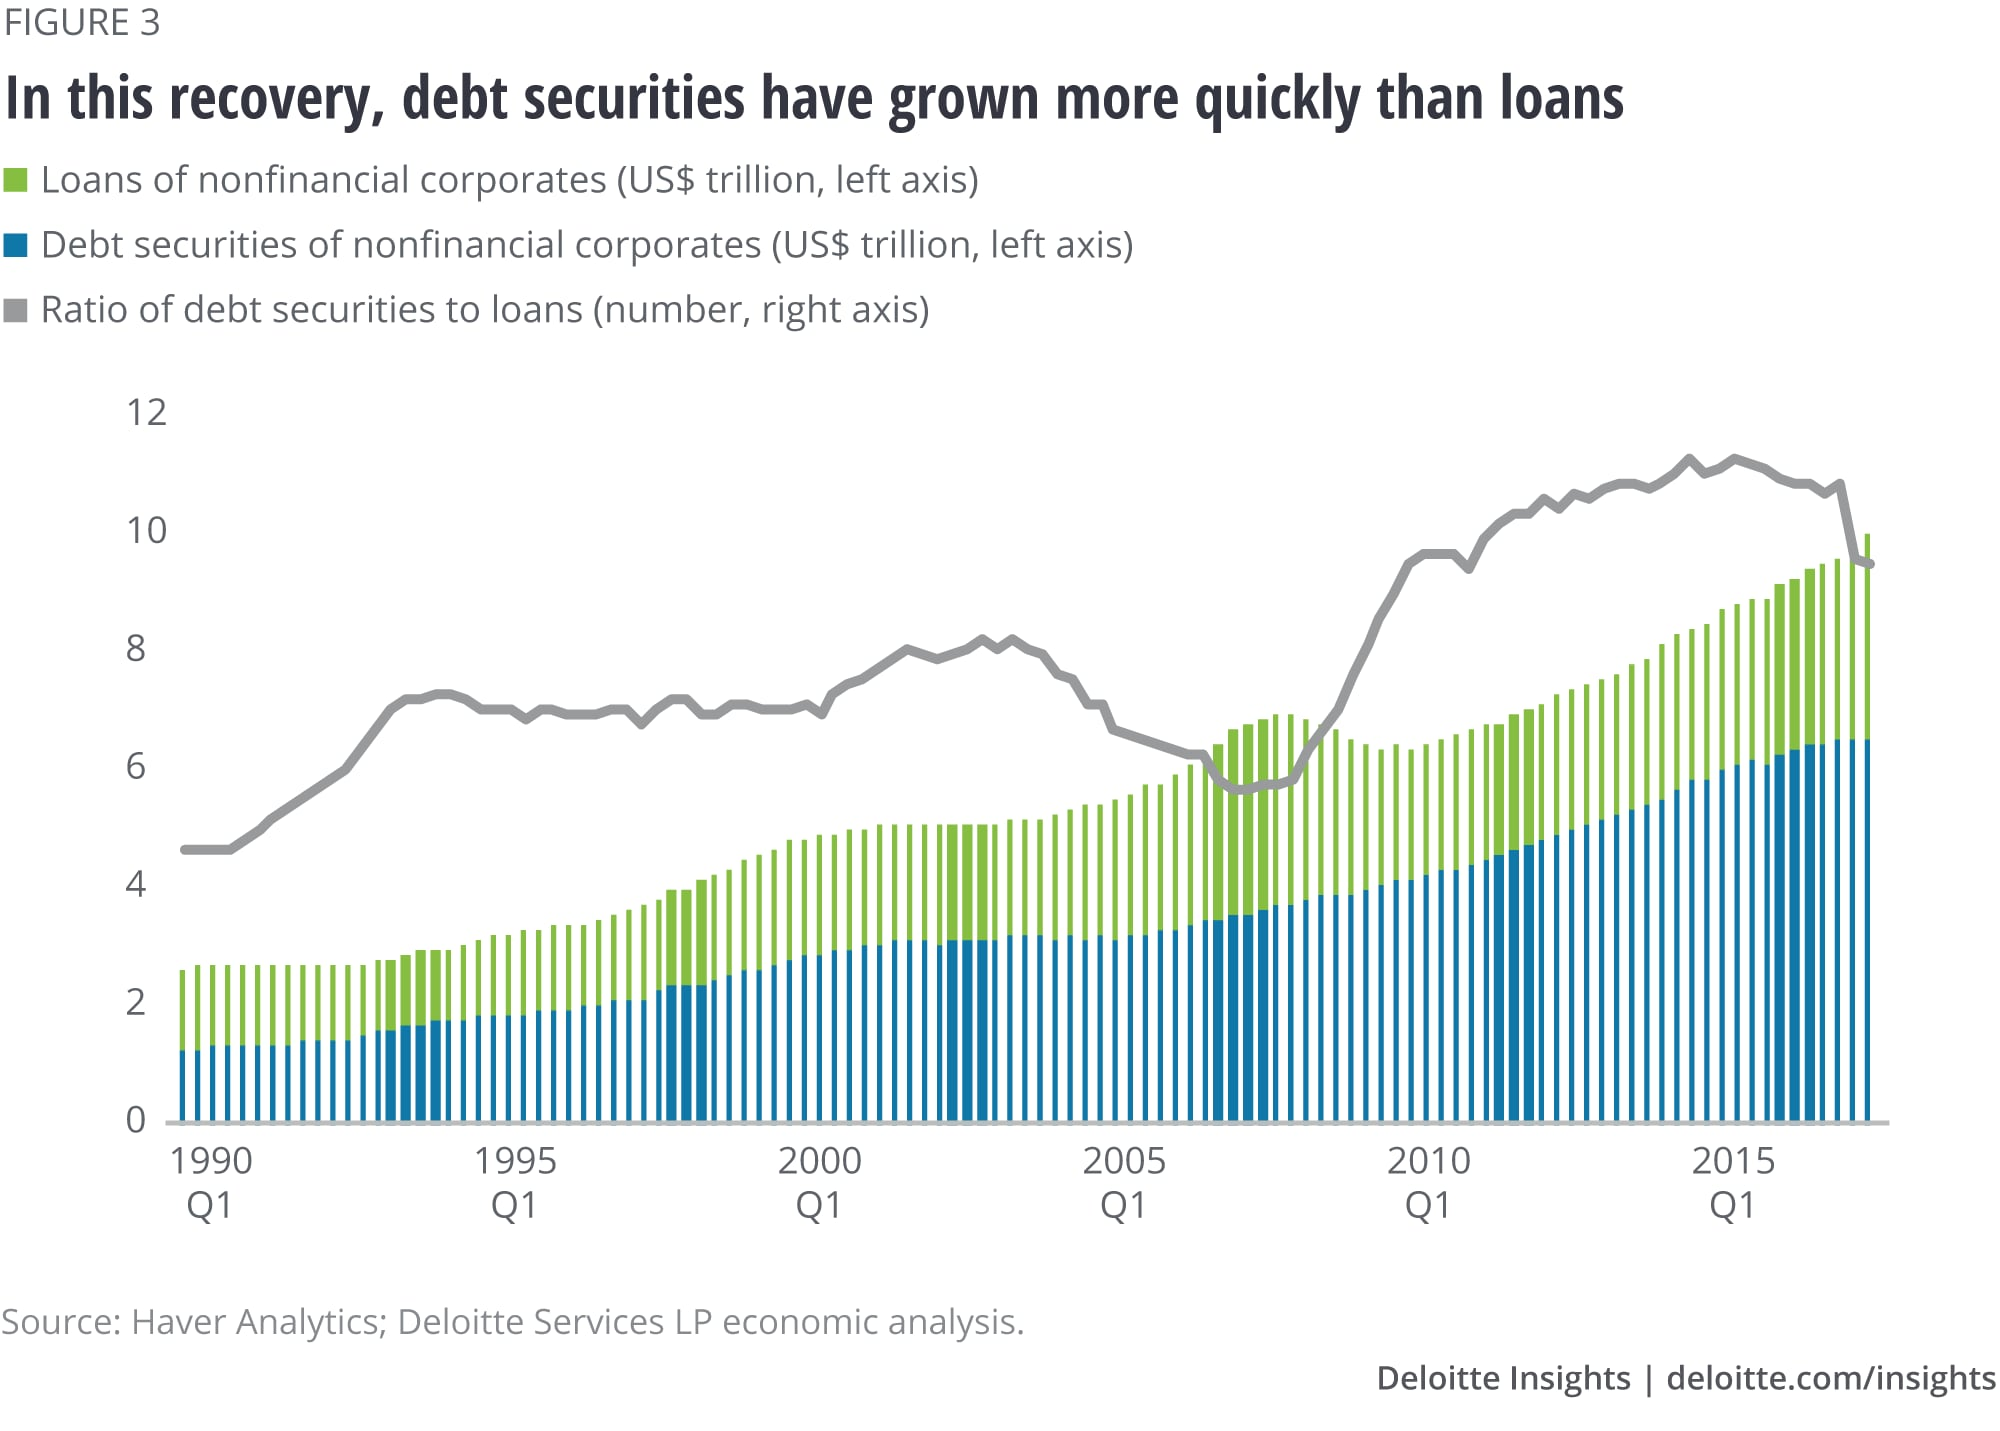 In this recovery, debt securities have grown more quickly than loans